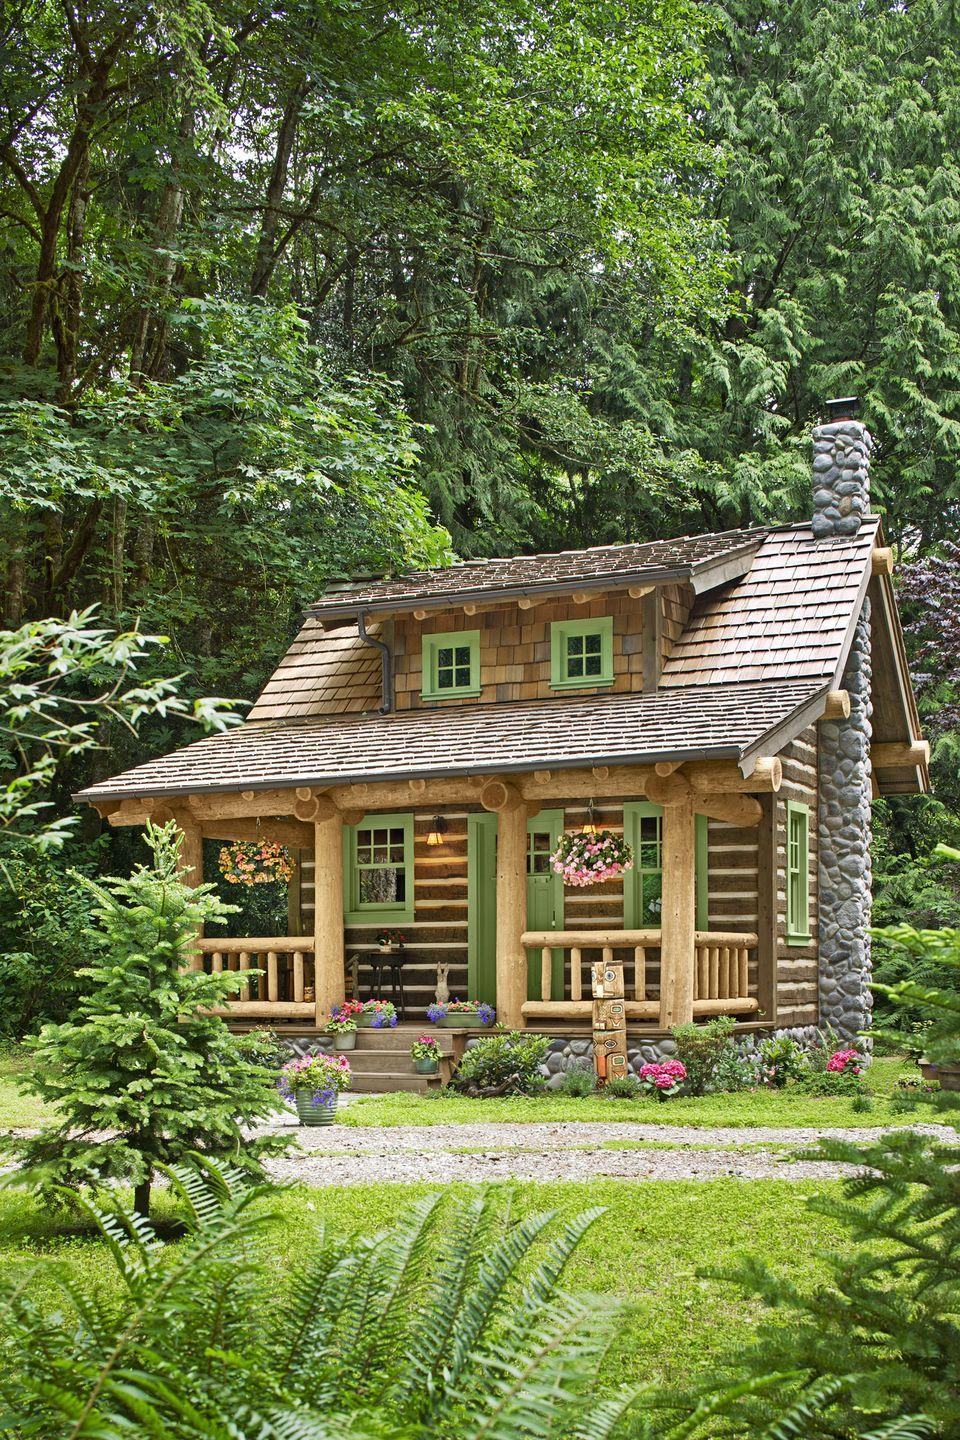 """<p>A hand-built hideaway—short on space, tall on charm—looks right at home among the Douglas firs of Port Orchard, Washington.</p><p><a class=""""link rapid-noclick-resp"""" href=""""https://www.amazon.com/Tiny-House-Live-Small-Dream/dp/0525576614?tag=syn-yahoo-20&ascsubtag=%5Bartid%7C10050.g.1887%5Bsrc%7Cyahoo-us"""" rel=""""nofollow noopener"""" target=""""_blank"""" data-ylk=""""slk:SHOP TINY HOUSE COFFEE TABLE BOOKS"""">SHOP TINY HOUSE COFFEE TABLE BOOKS</a></p>"""